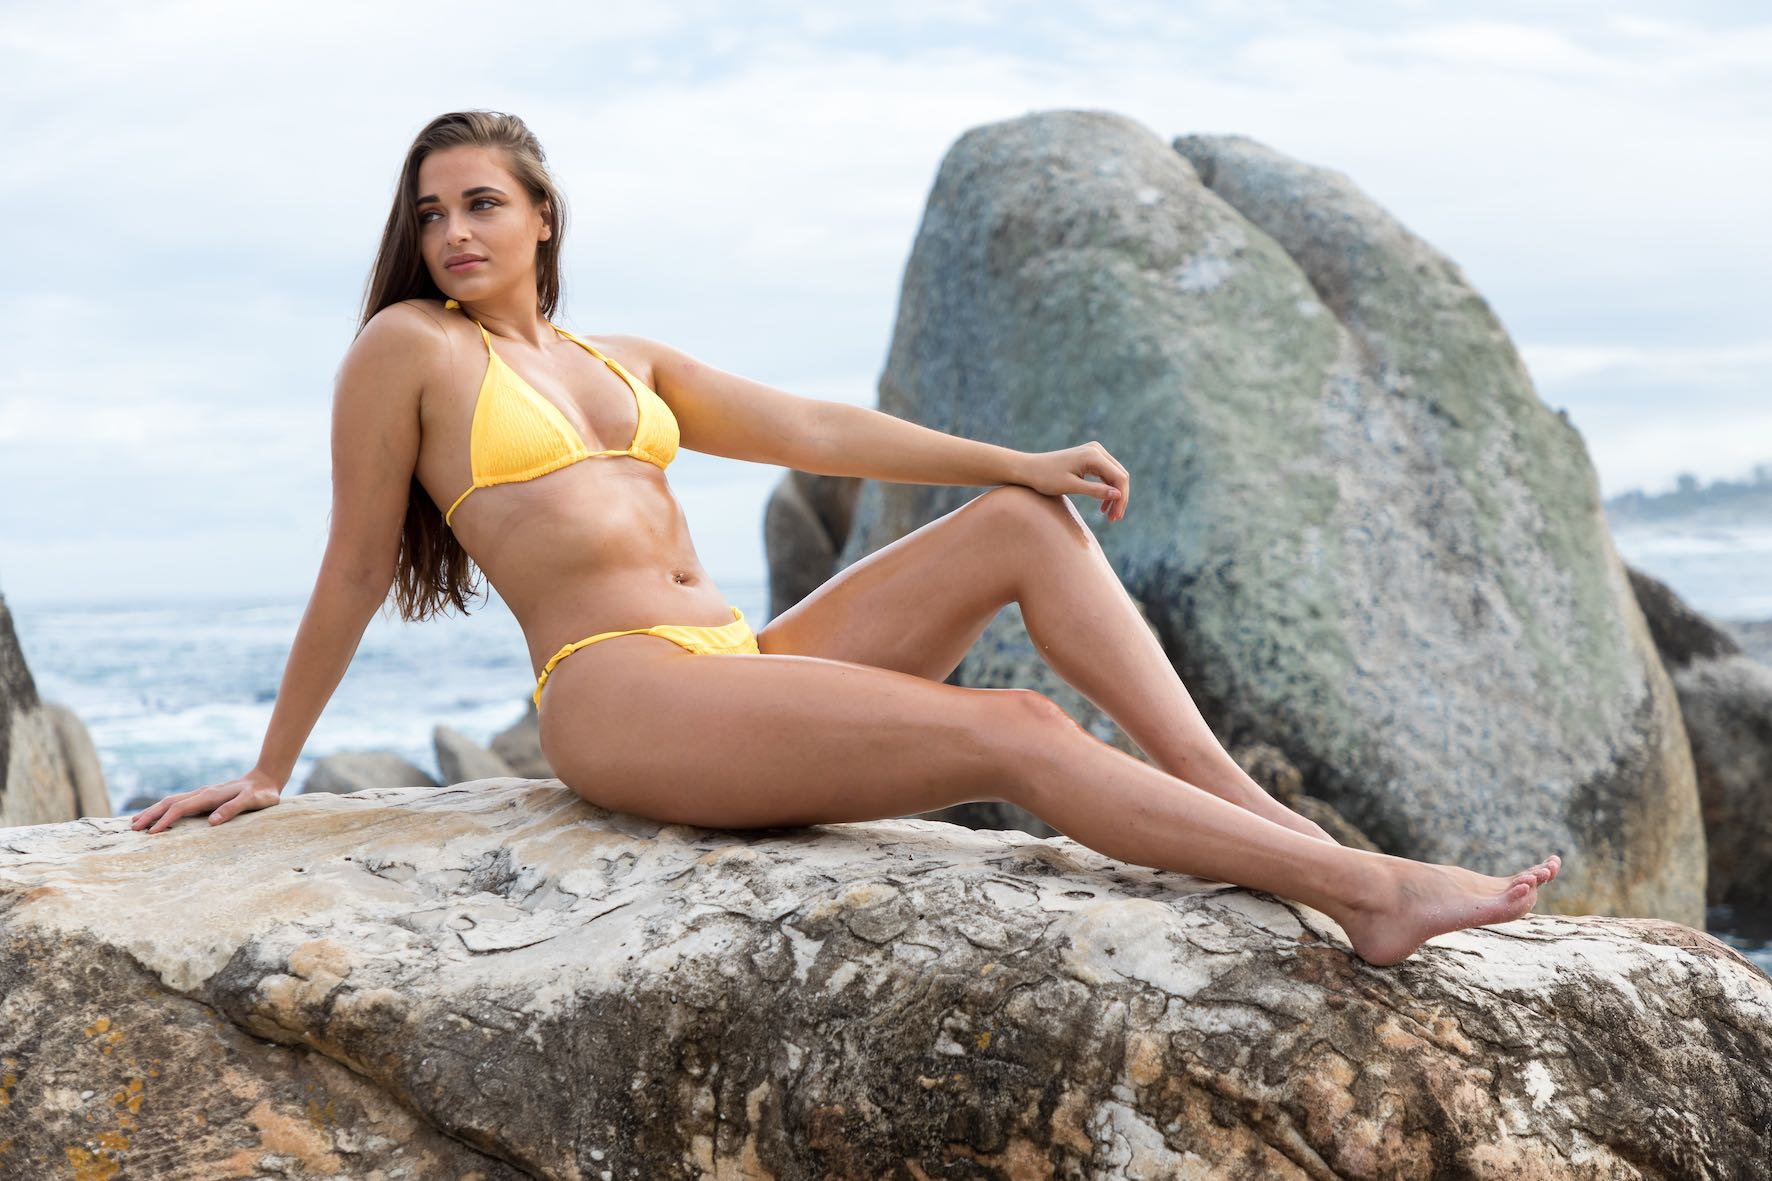 Meet Mia le Roux as our LW Babe of the Week